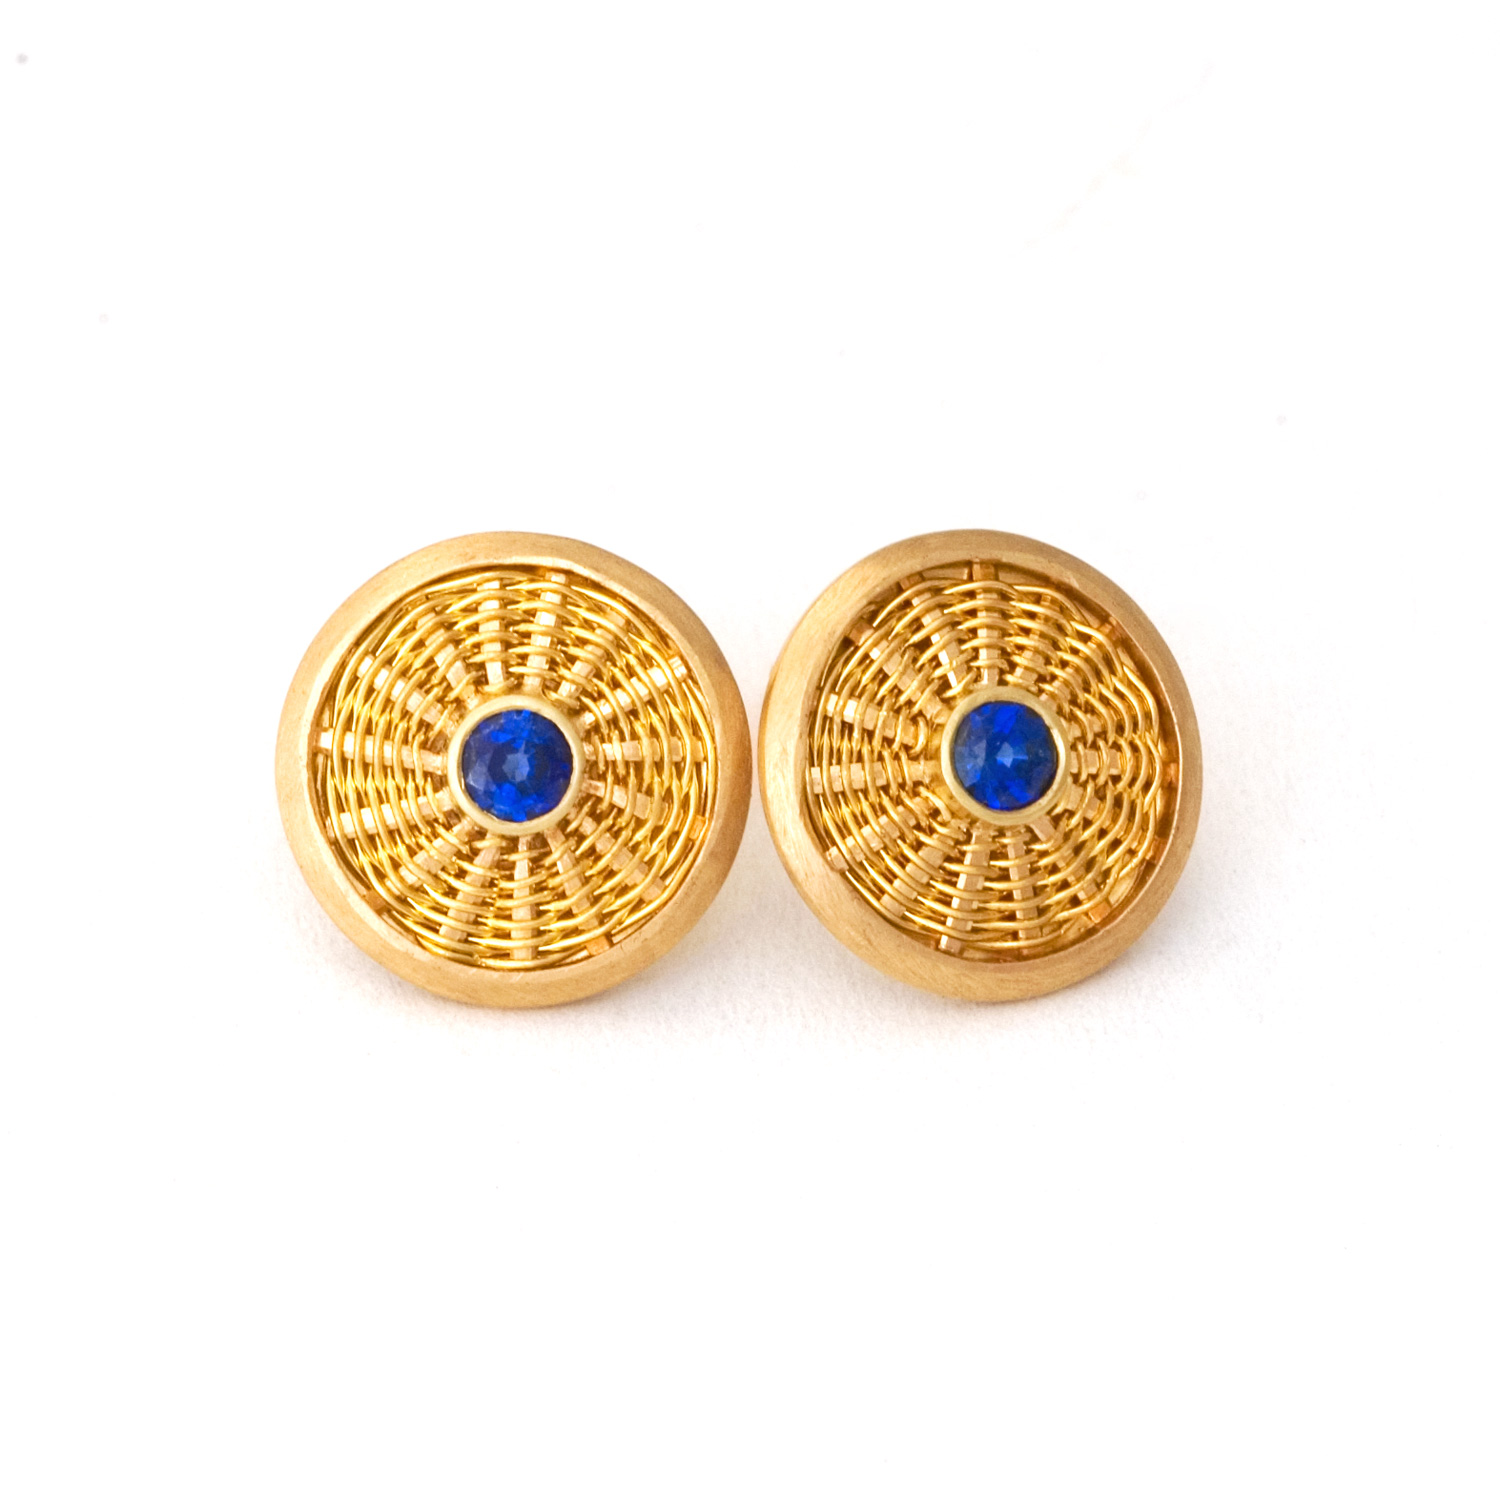 Sunburst Weave Stud Earrings in 18k & 22k gold with blue sapphires by Tamberlaine